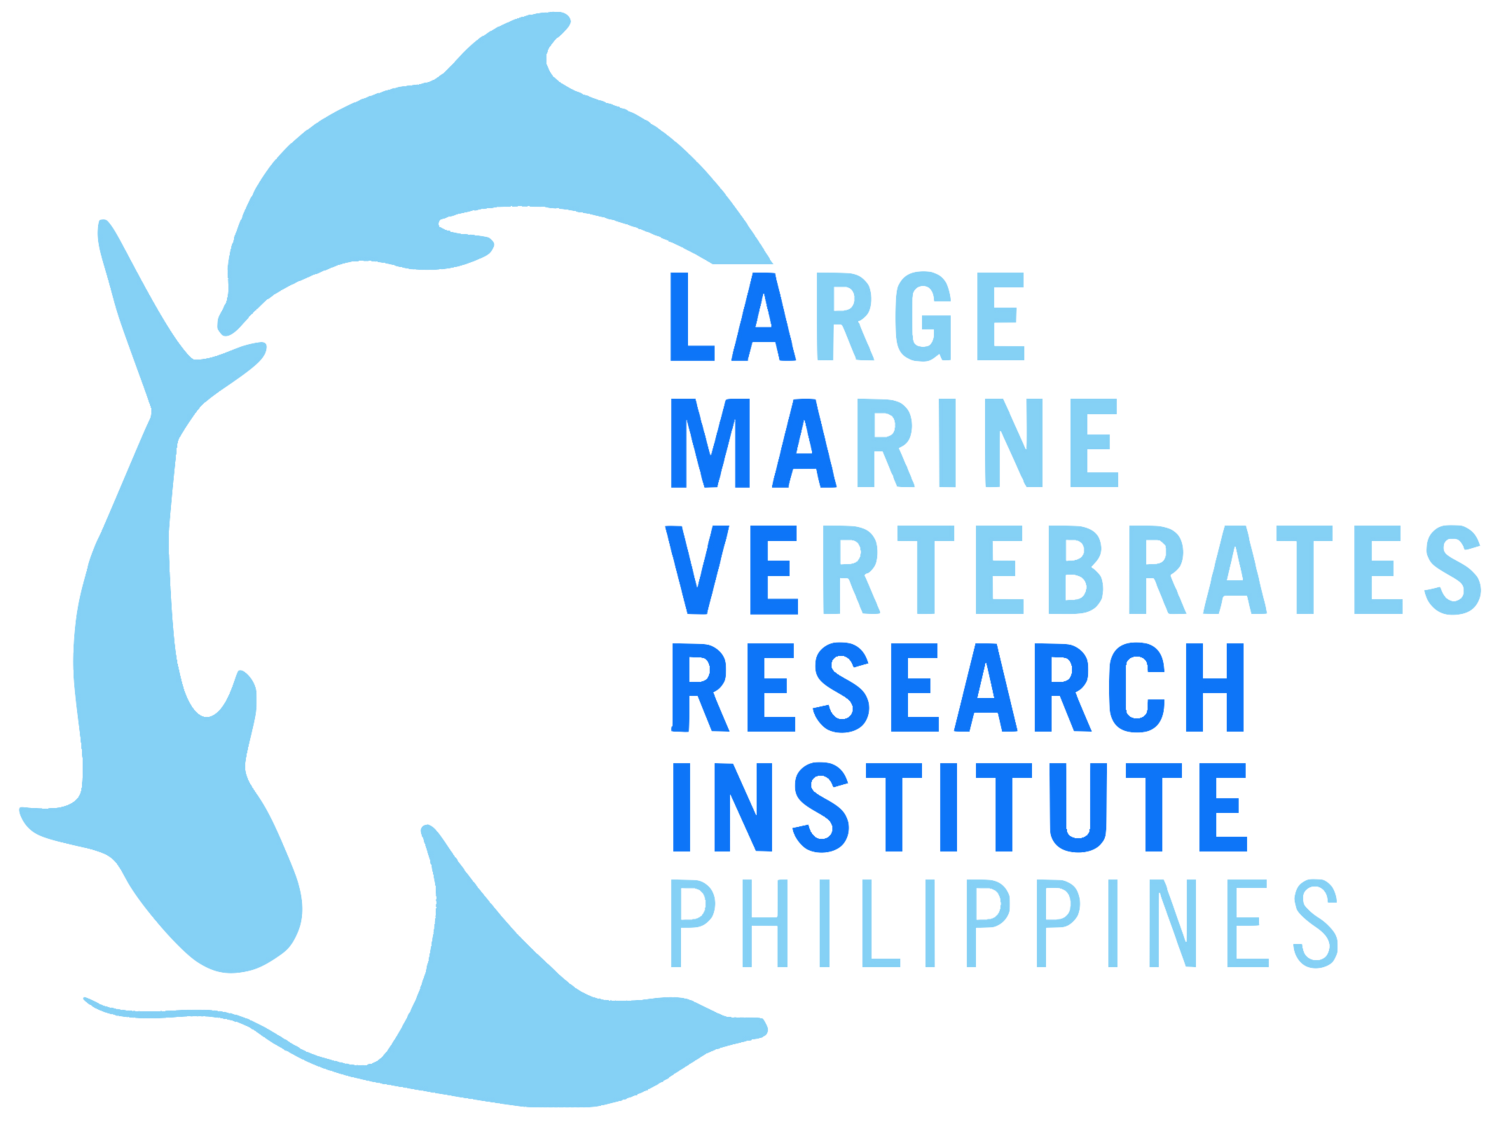 Large Marine Vertebrates Research Institute Philippines